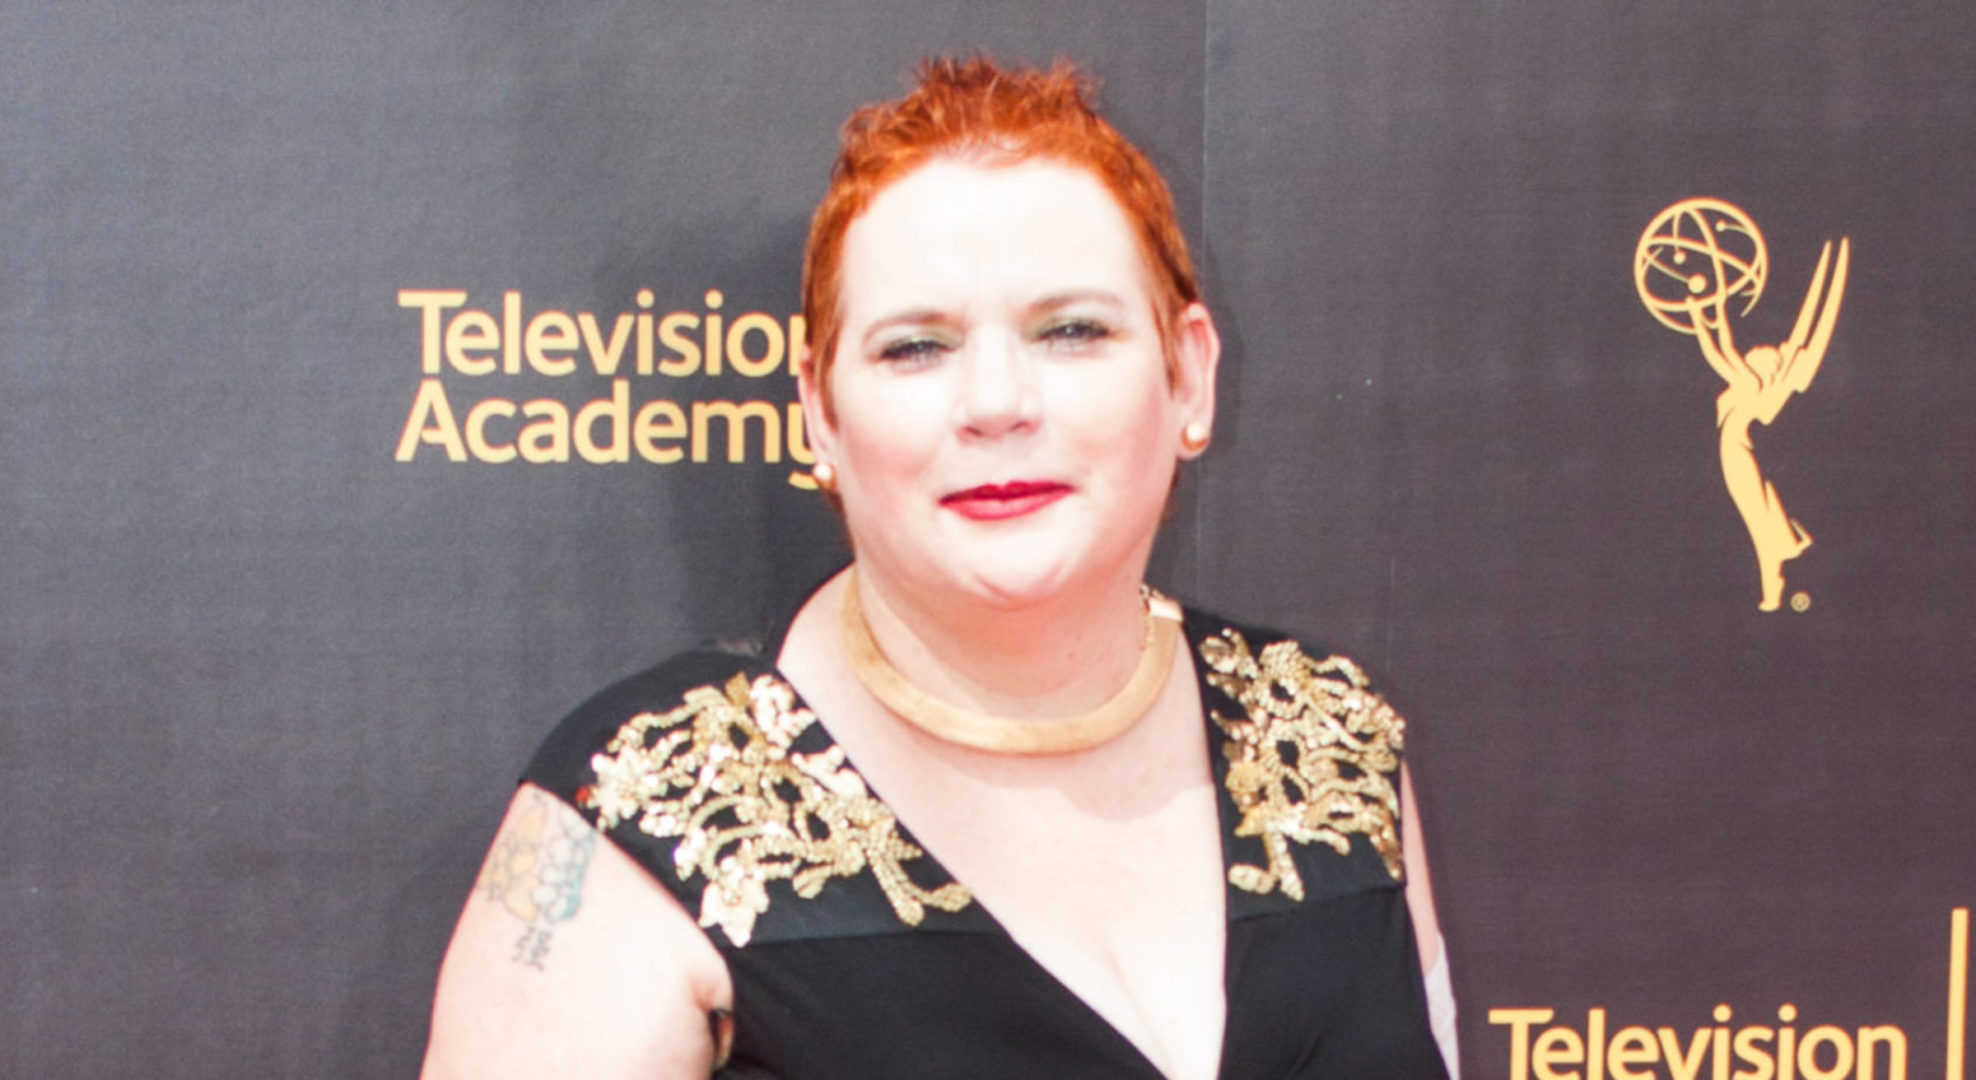 Tammy Forchion The Emmys® Red Carpet 4chion lifestyle